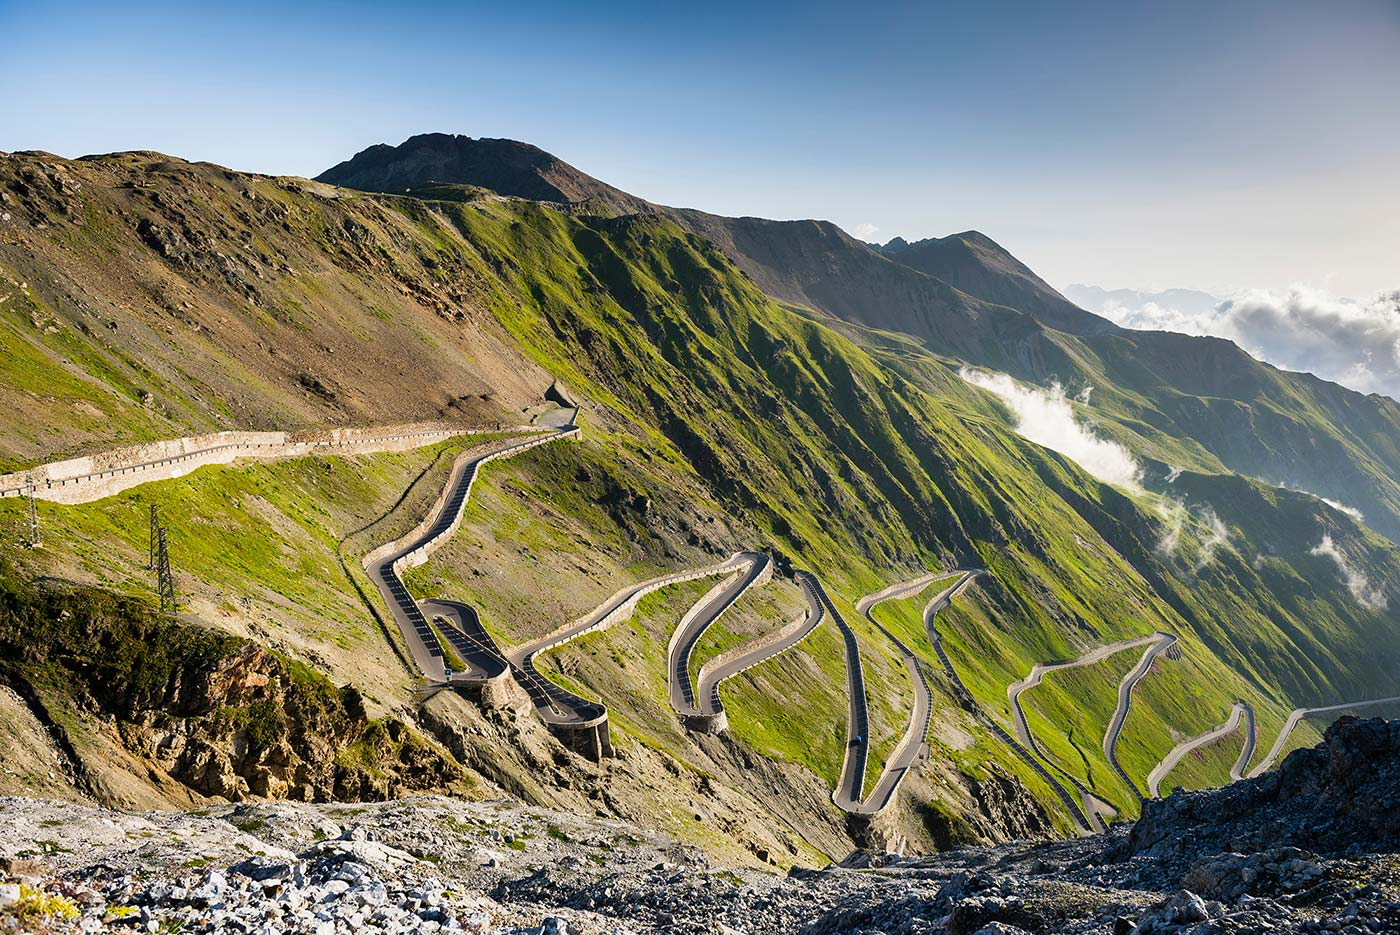 Stelvio Pass mountain pass and driving road in Italy